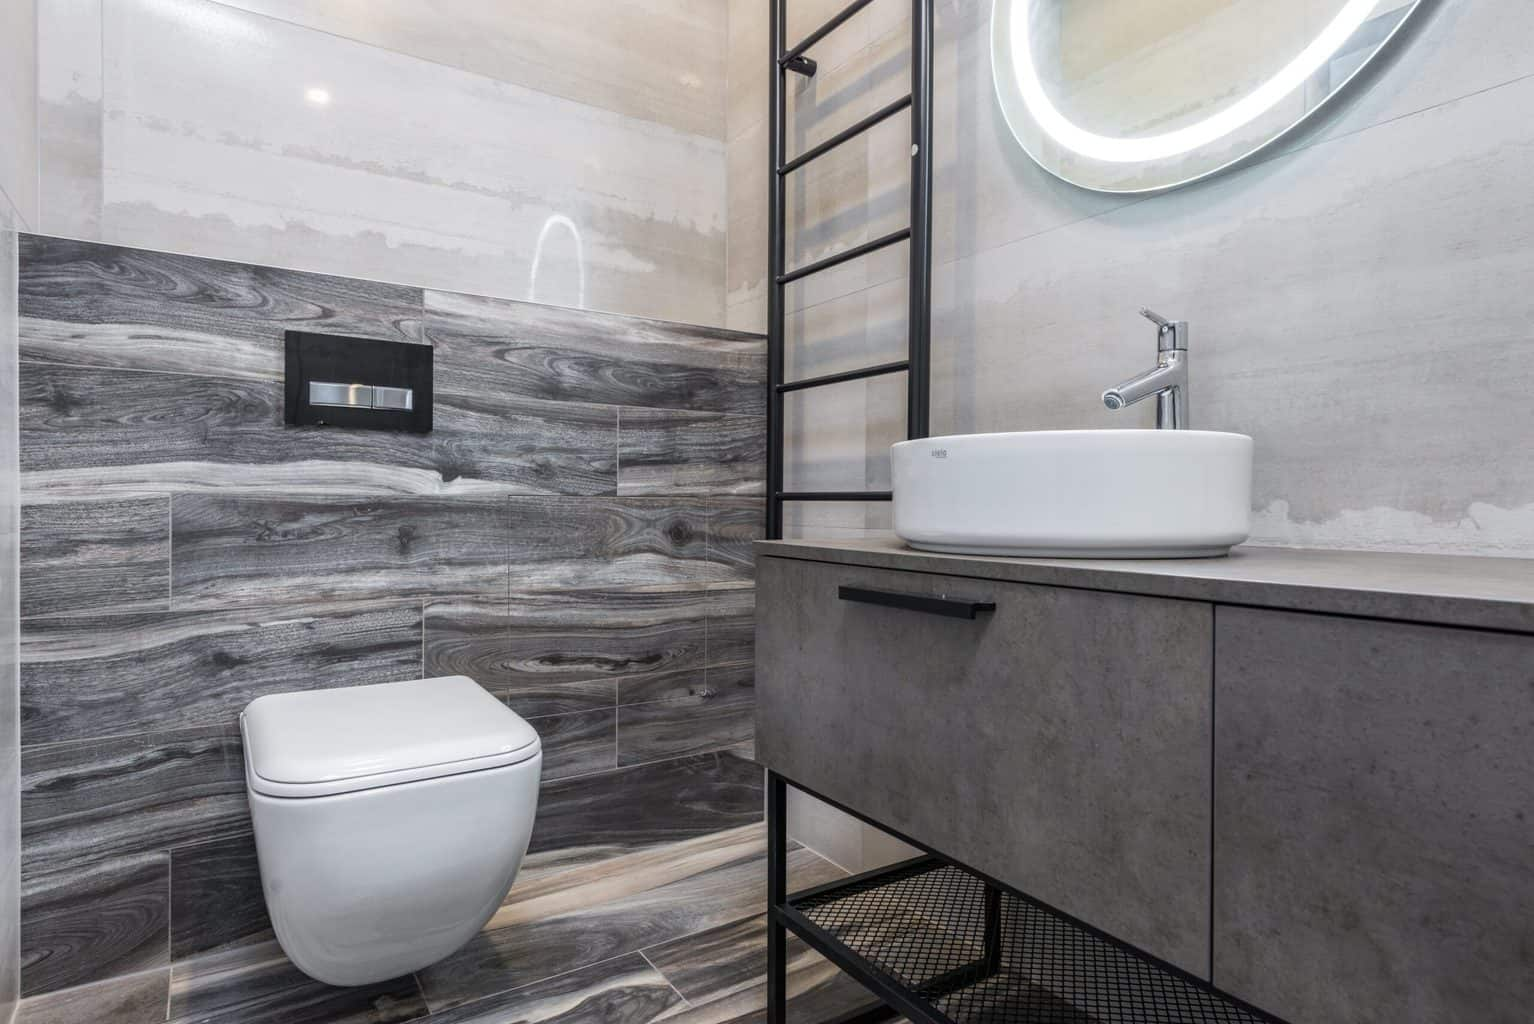 A bathroom with white ceramic sink and toilet